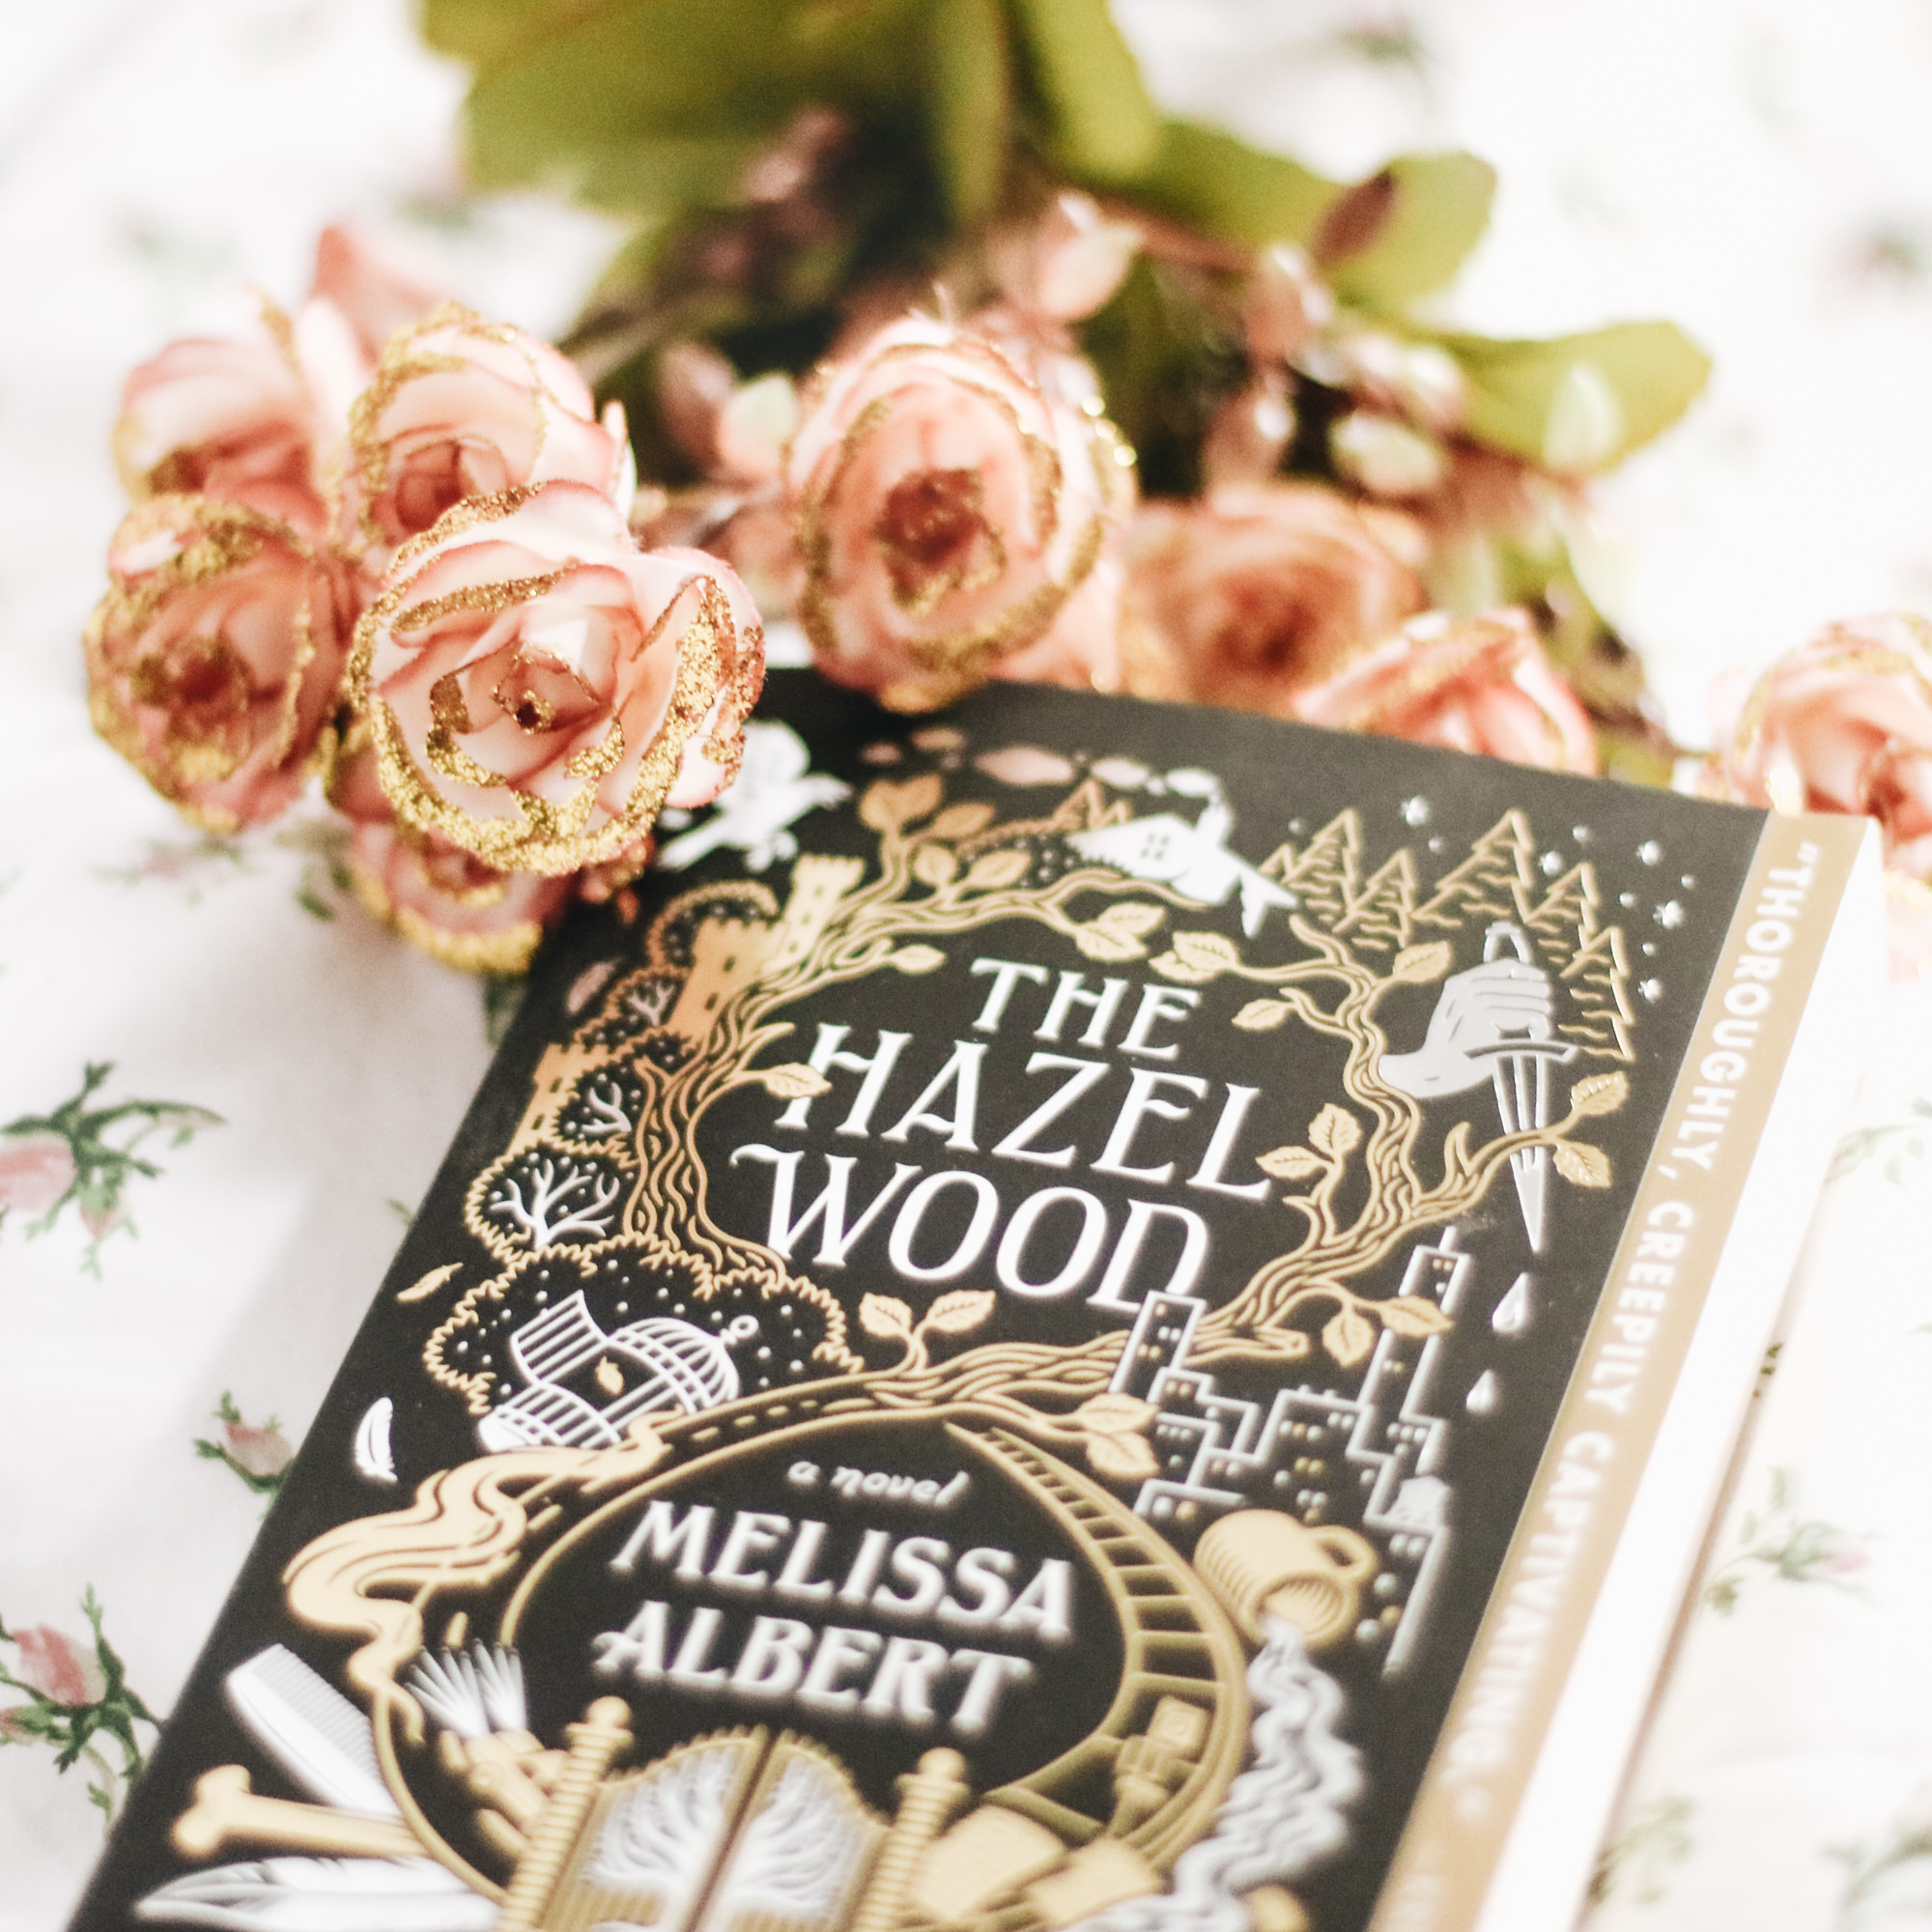 Book Review - The Hazel Wood by Melissa Albert